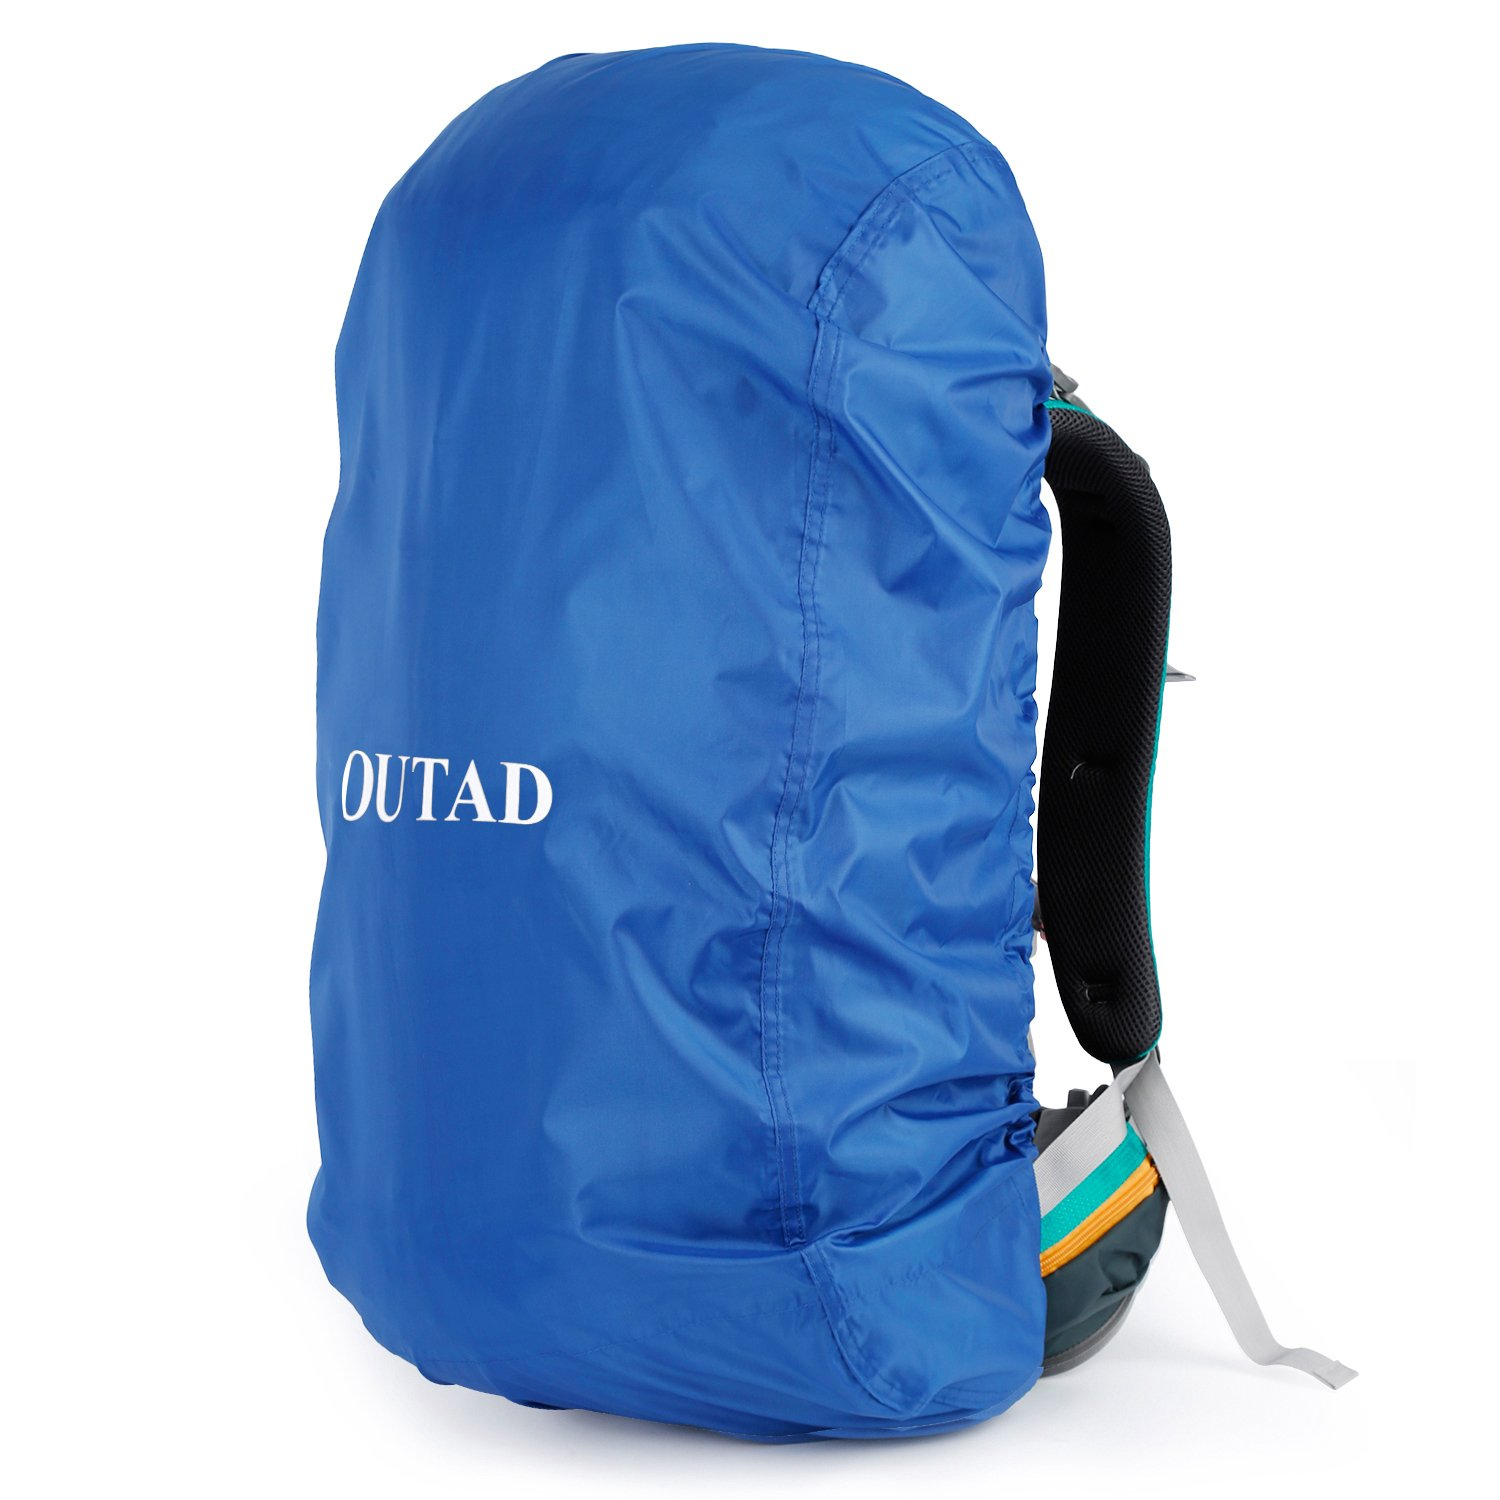 OUTAD High Quality Camping Hiking Rucksack Bag Waterproof Rainproof Cover for Backpack